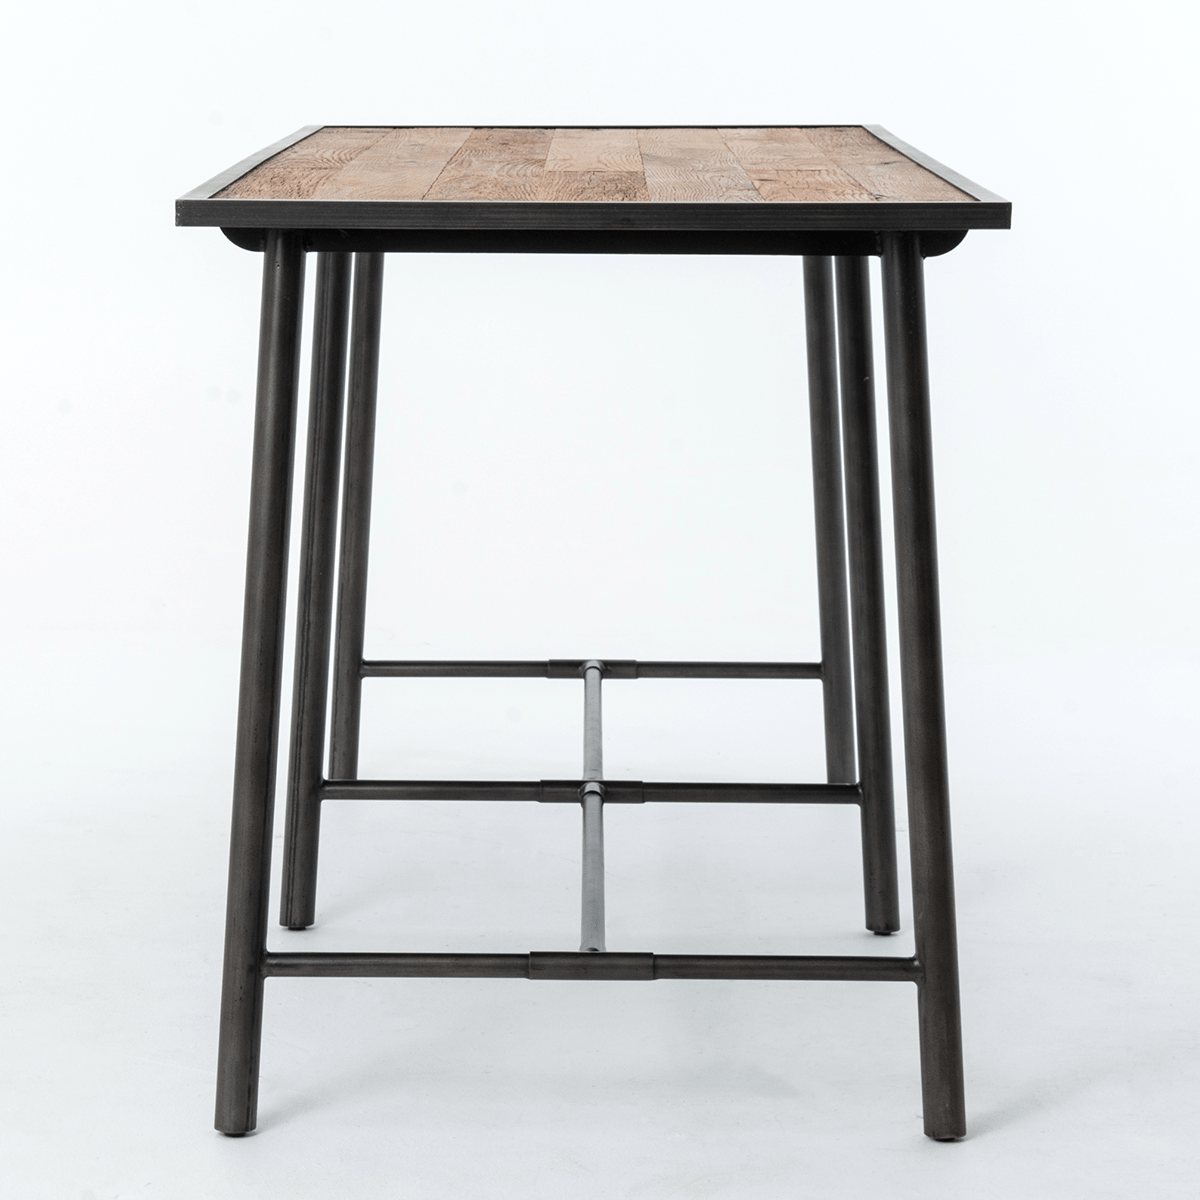 duke-bar-table-washed-old-oak-3-shopceladon